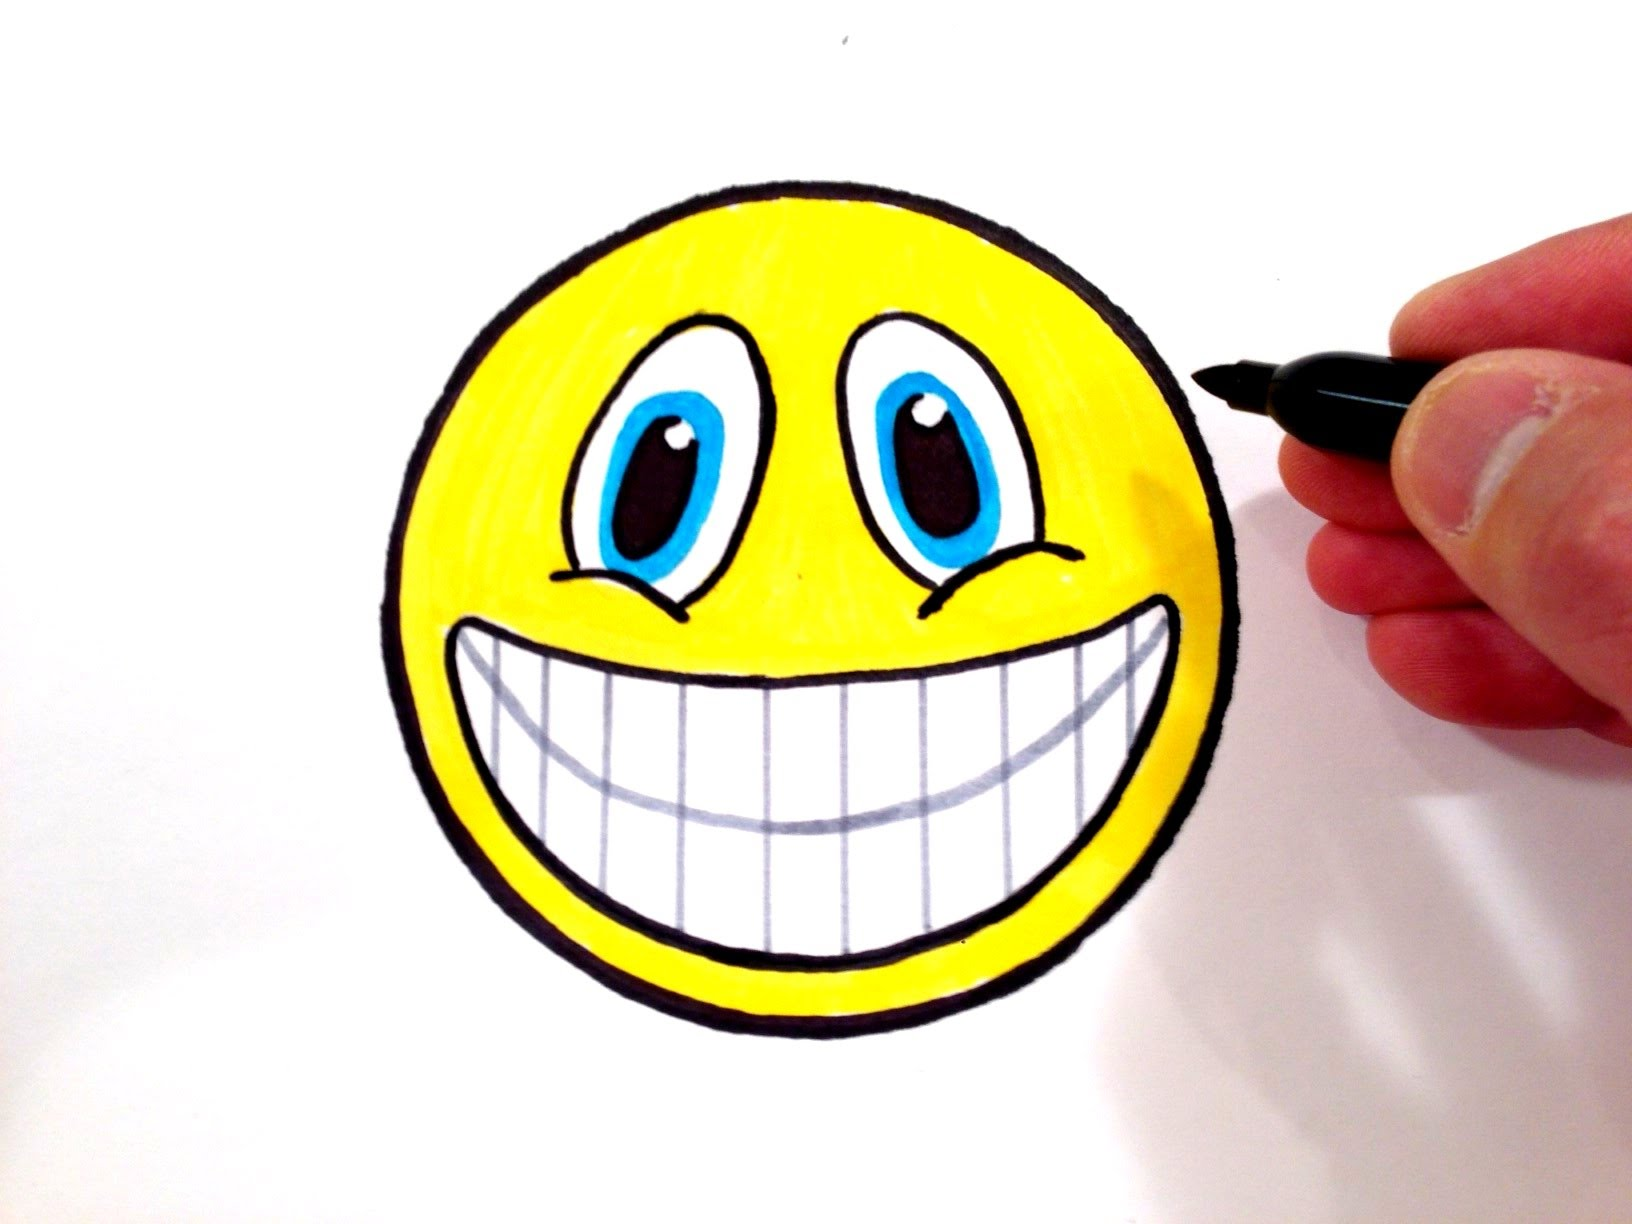 Tooth clipart smiley face. Drawing at getdrawings com